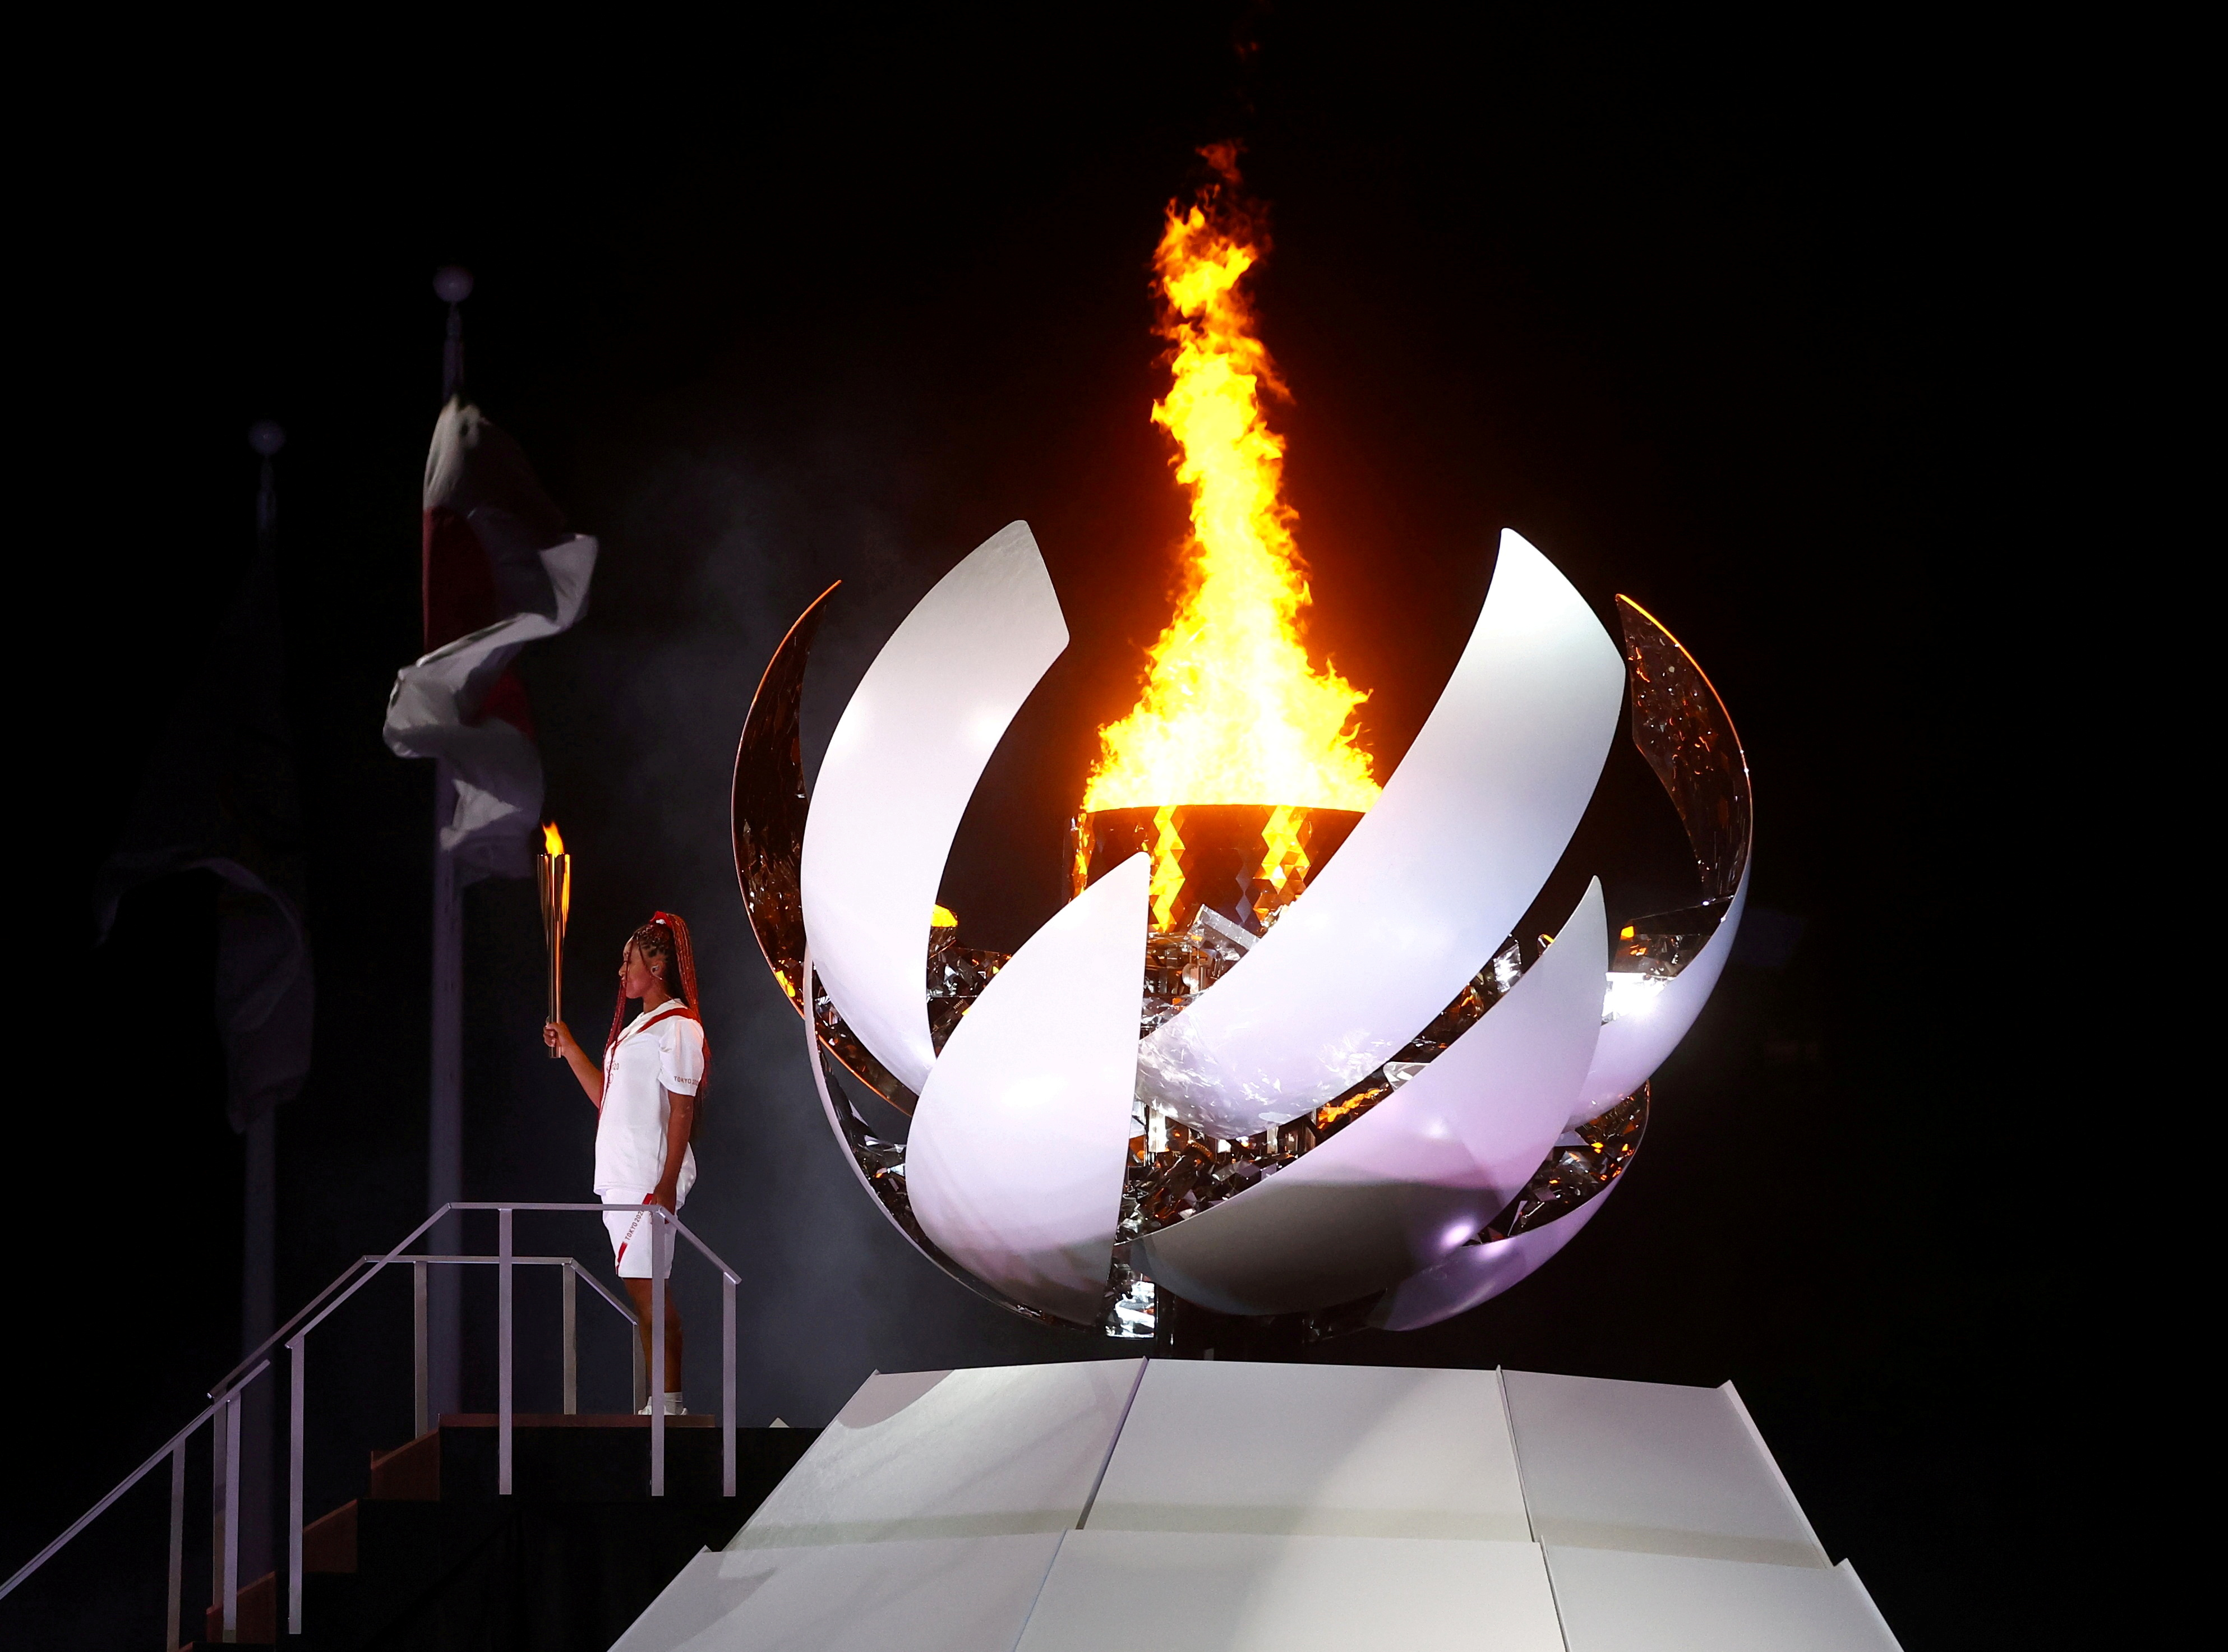 Naomi Osaka of Japan holds the Olympic torch after lighting the cauldron at the Tokyo 2020 Olympics opening ceremony, July 23, 2021. REUTERS/Kai Pfaffenbach